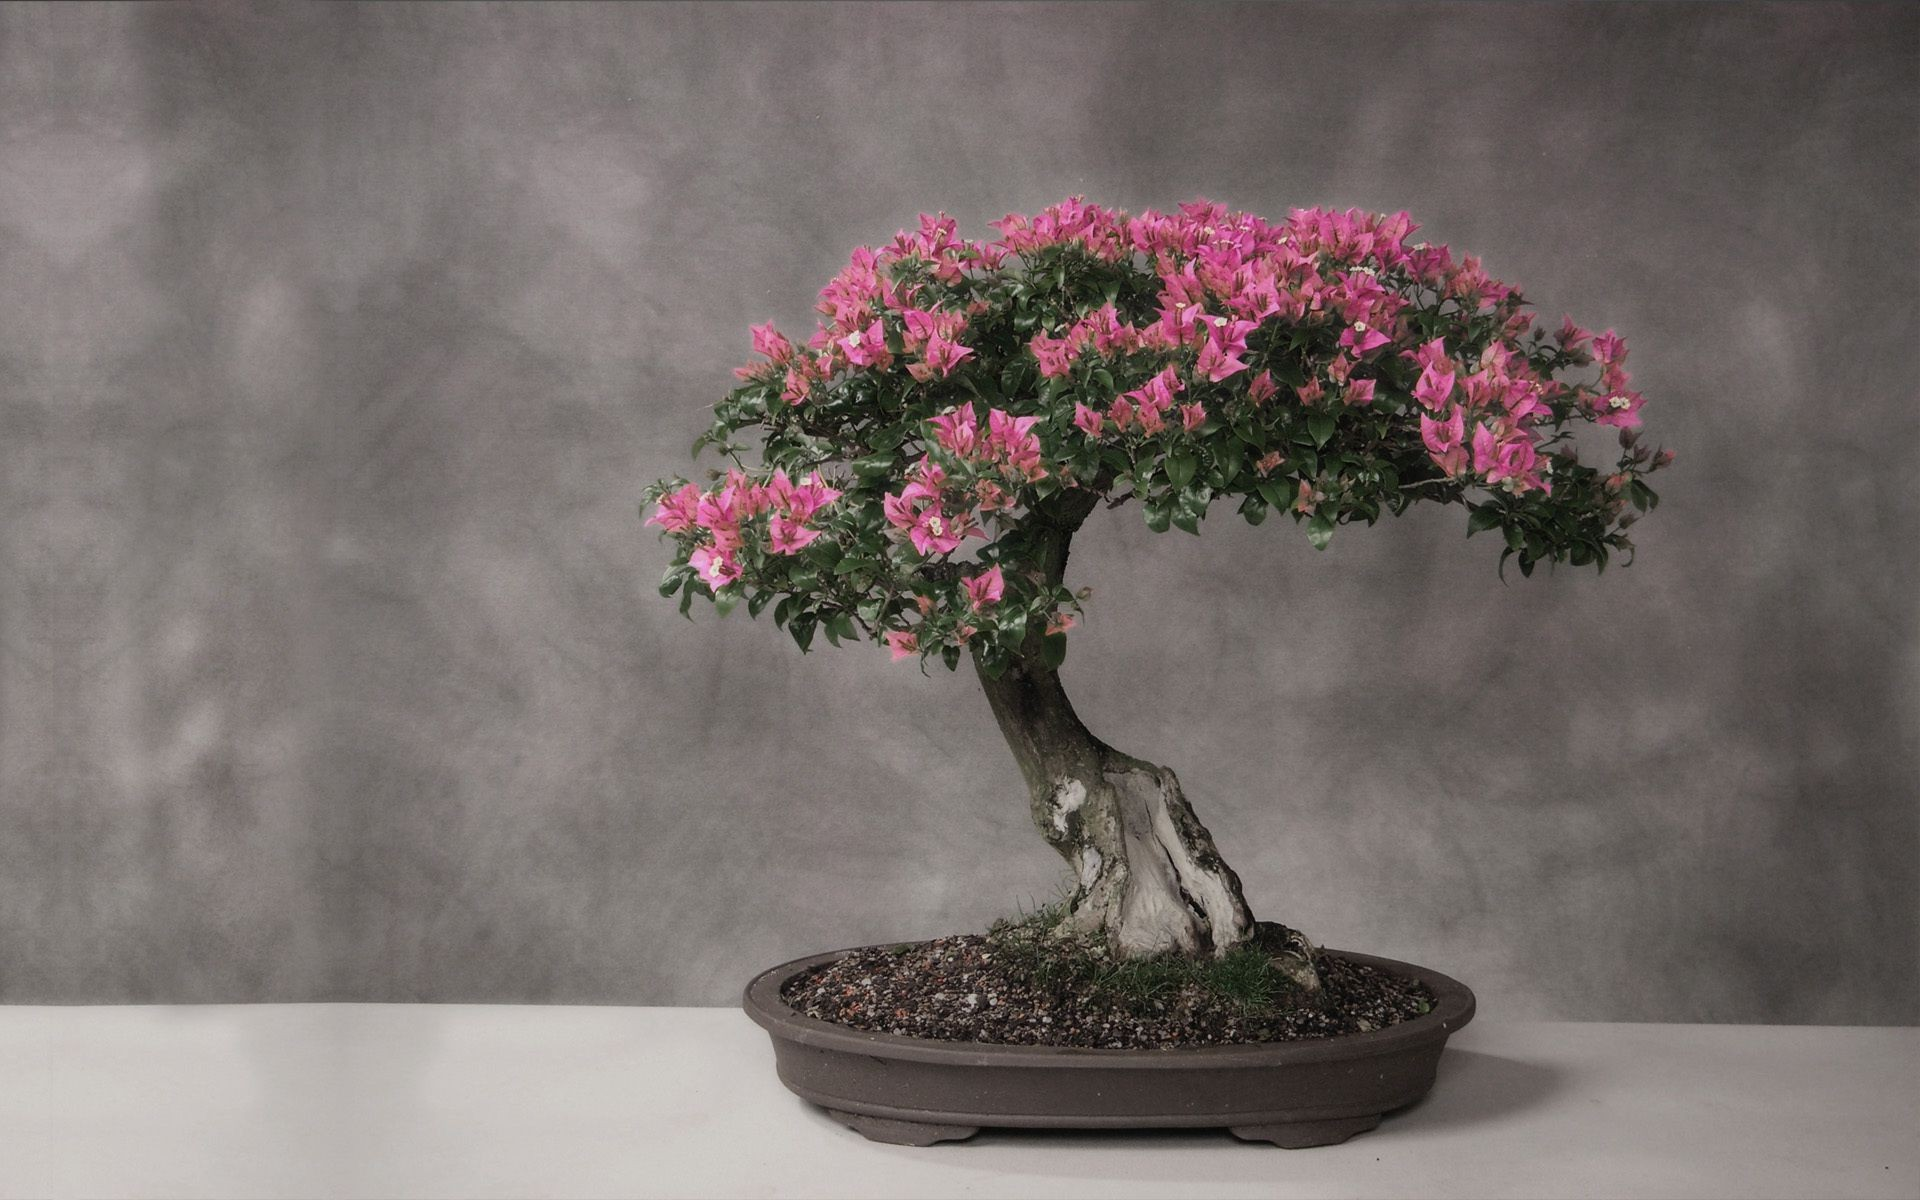 the leaves stand light table Bonsai tree Japan